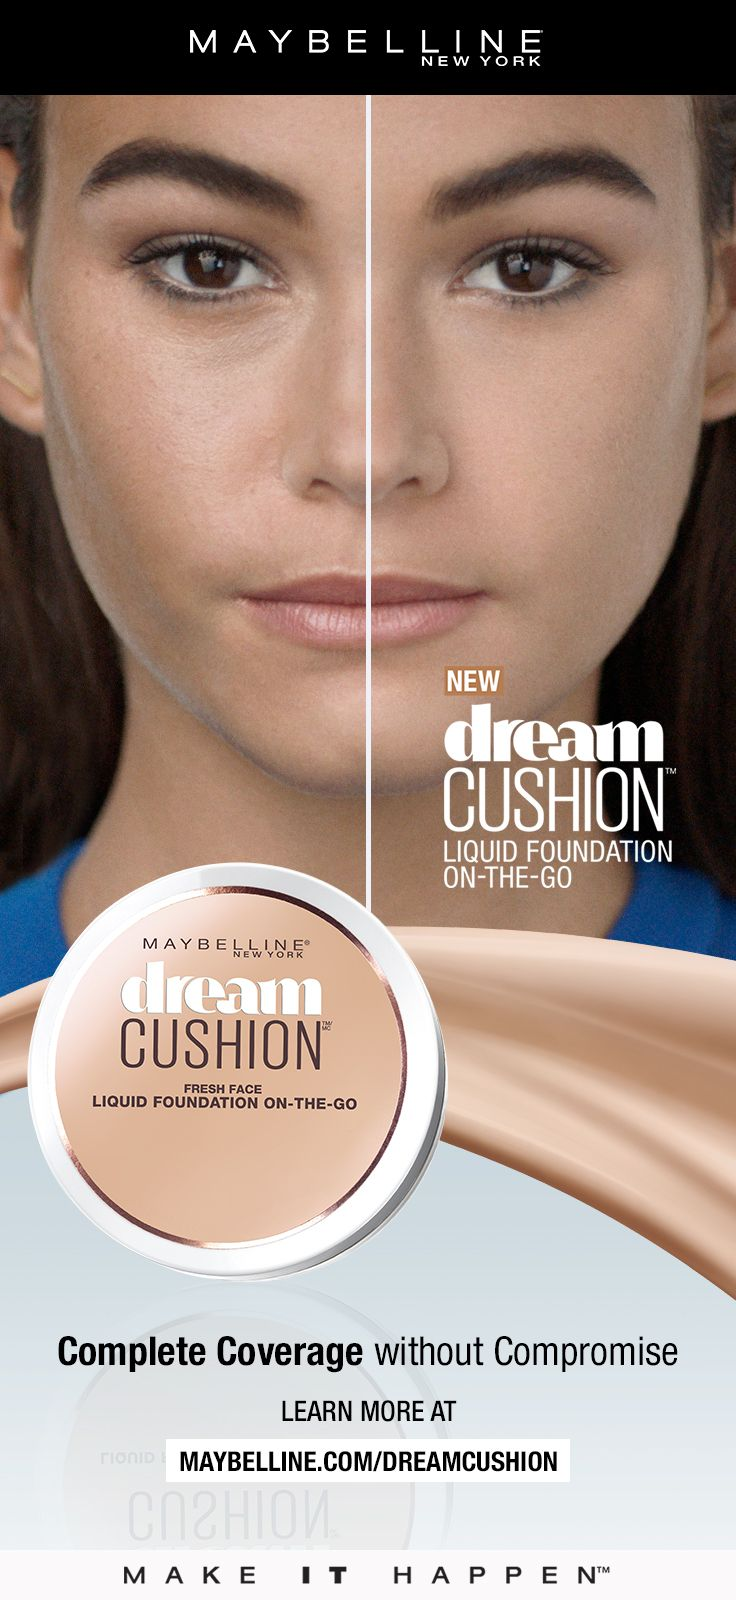 Achieve natural, luminous coverage on-the-go with Maybelline Dream Cushion Foundation. Maybelline's increased color pigments deliver complete luminous coverage for fresh-faced makeup look.